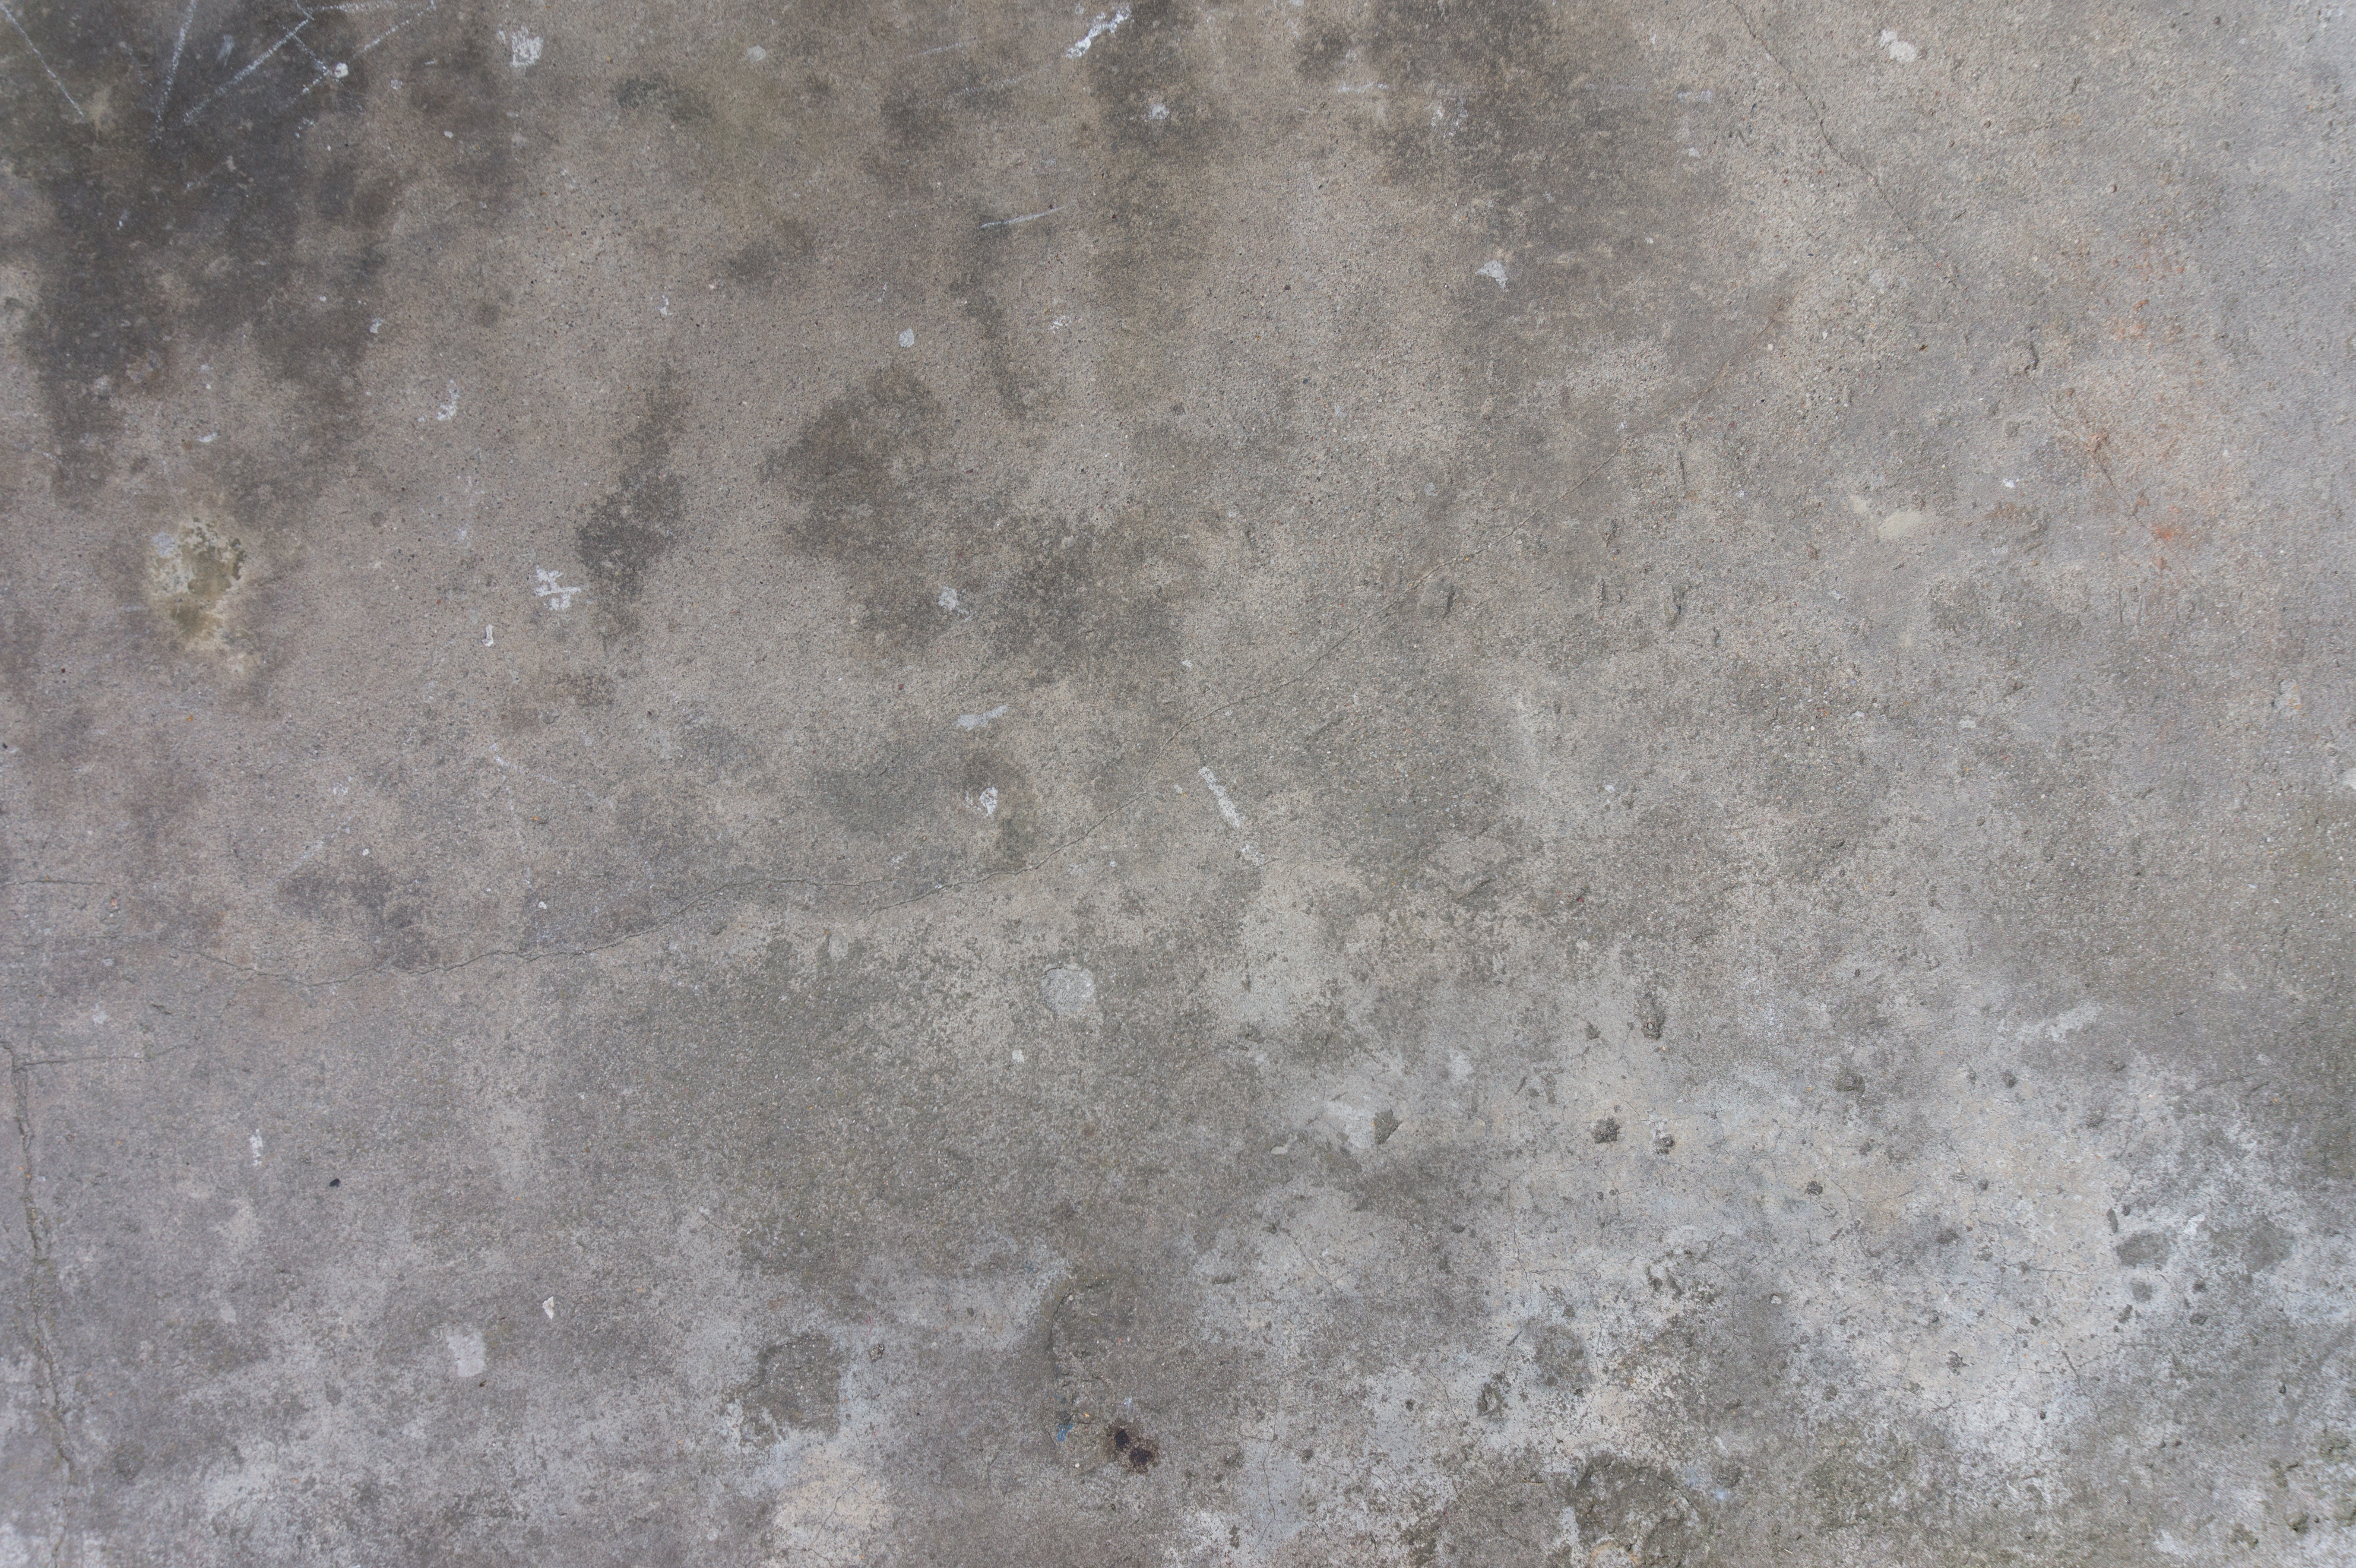 Dirty Concrete Wall Covered With Stains